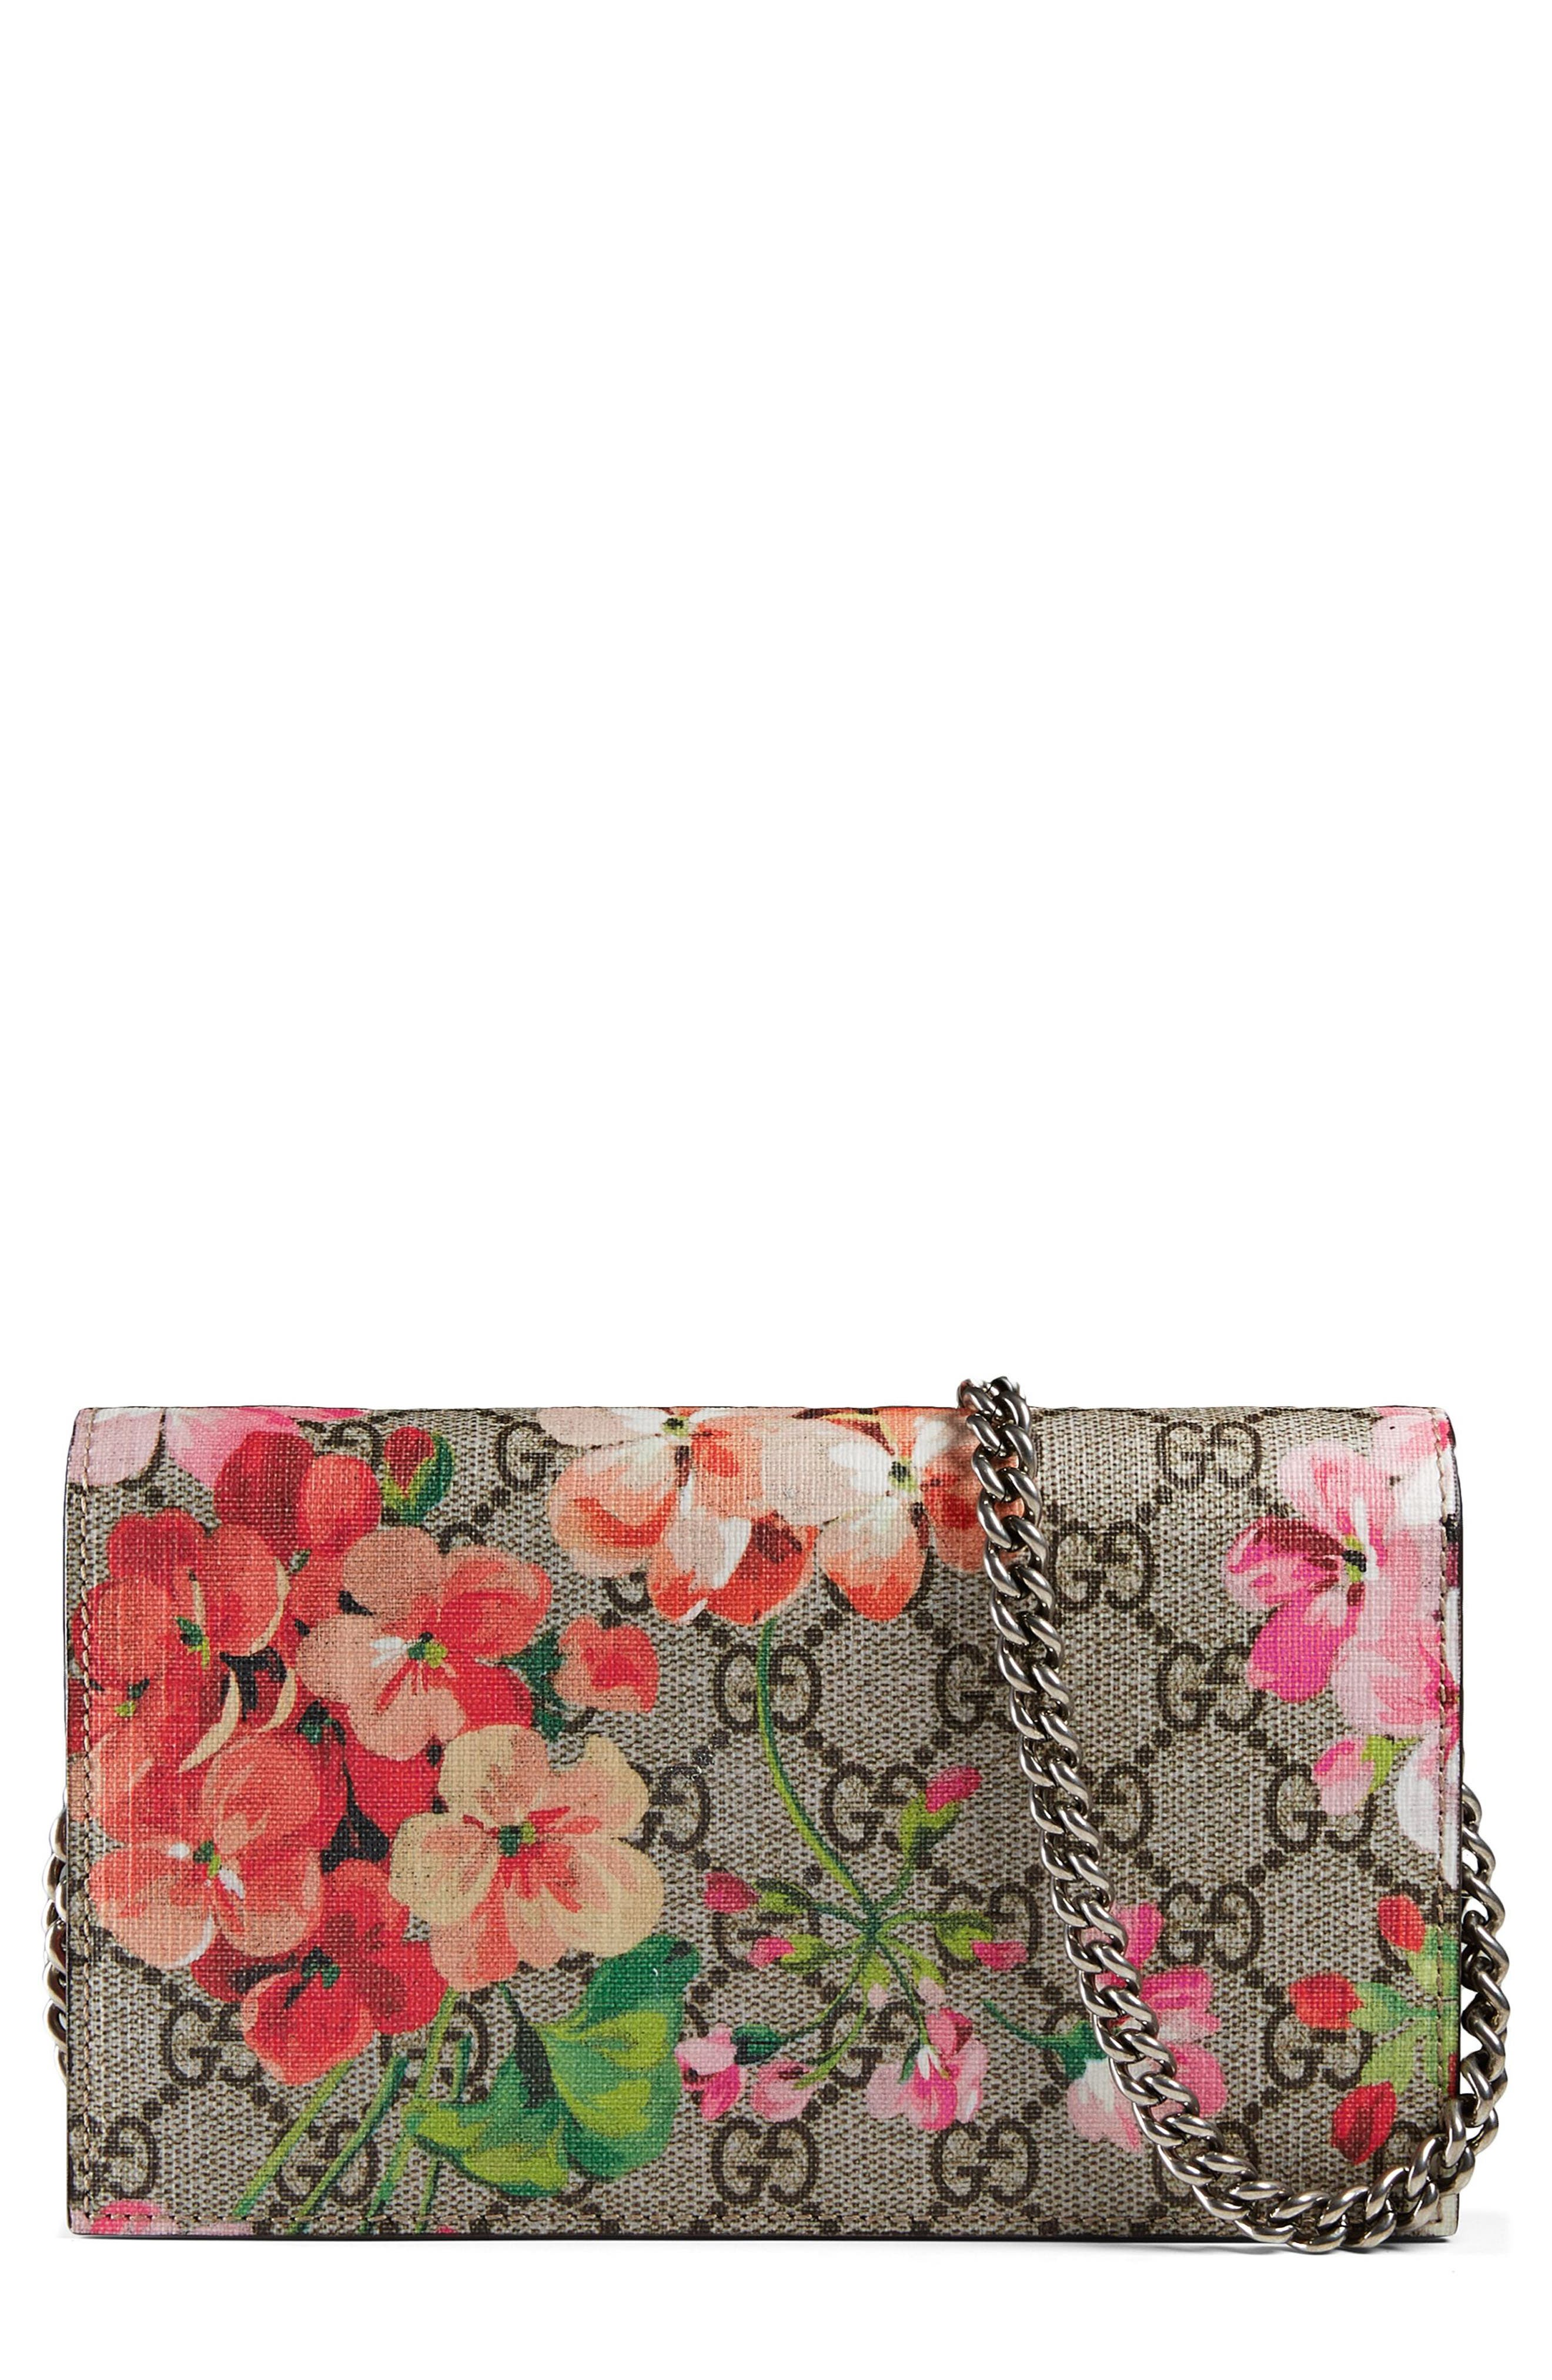 GG Blooms Supreme Canvas Wallet on a Chain,                             Main thumbnail 1, color,                             Beige Ebony Multi/Dry Rose